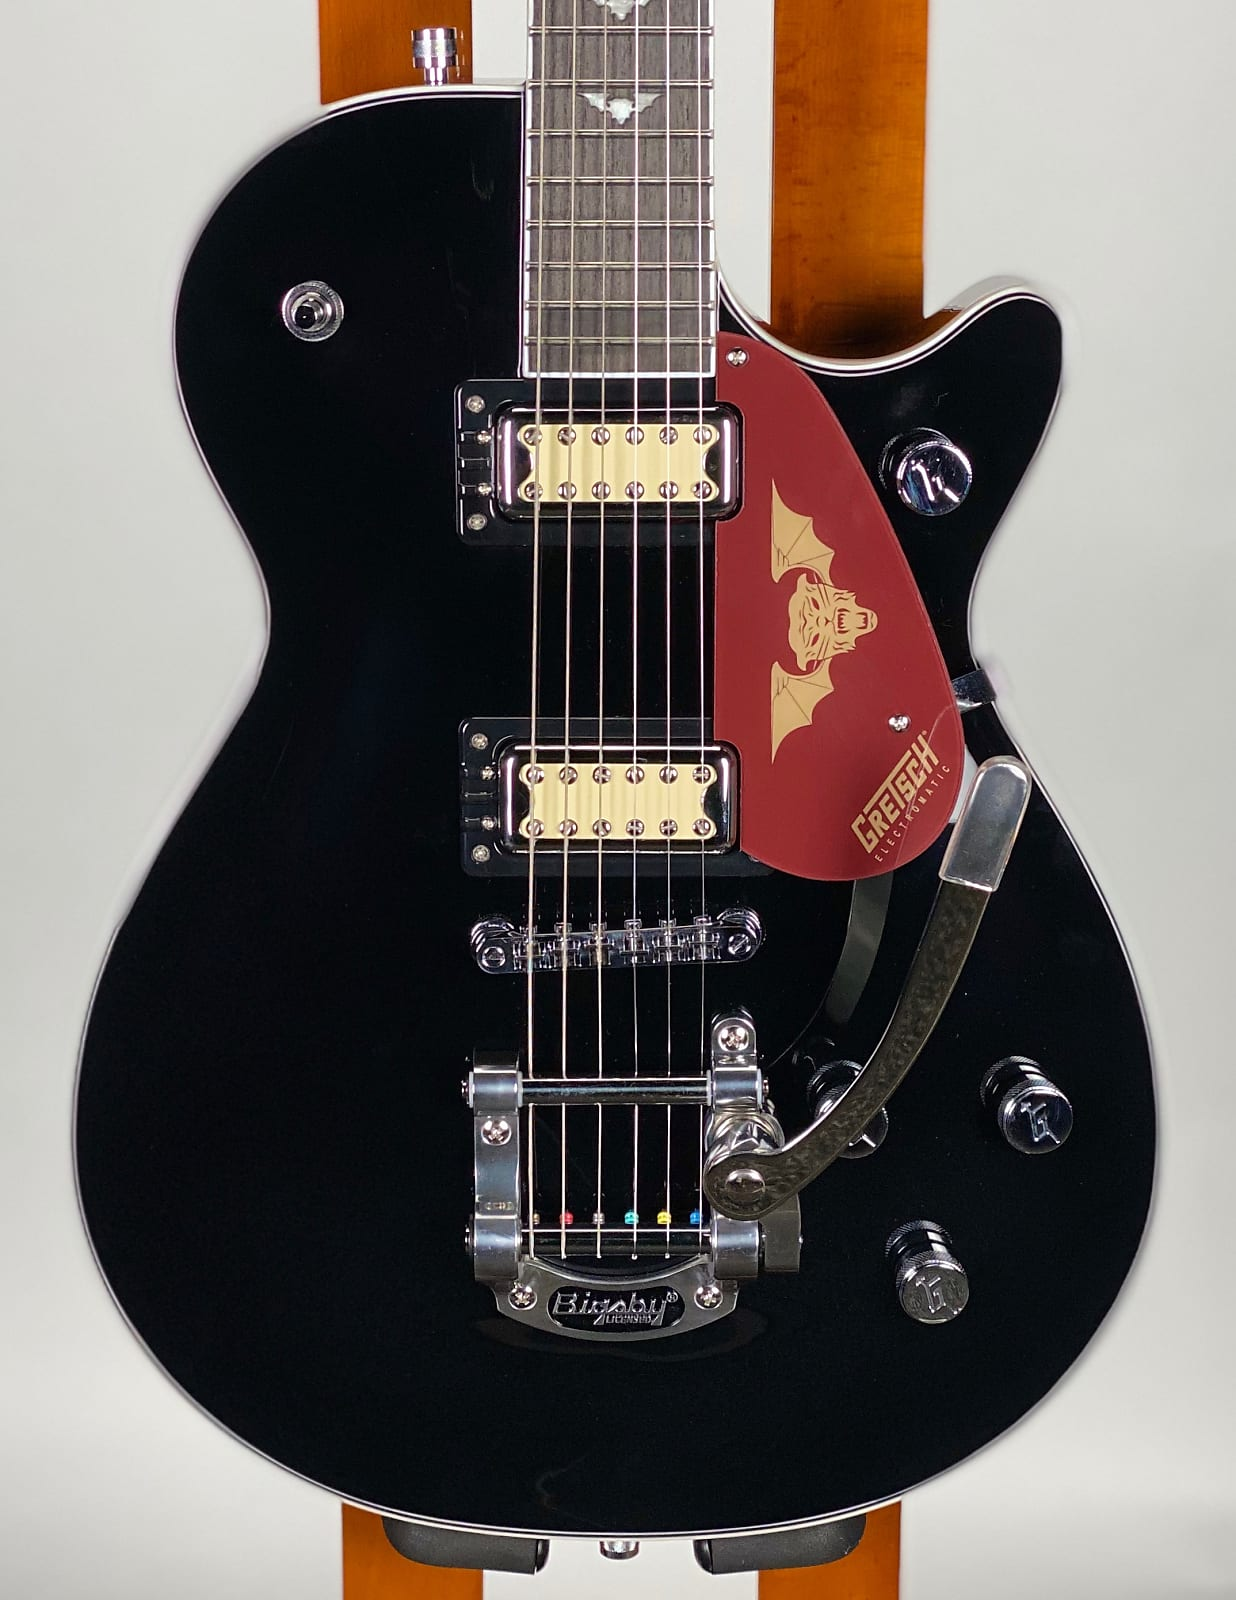 Gretsch G5230T Nick 13 Signature Electromatic Tiger Jet